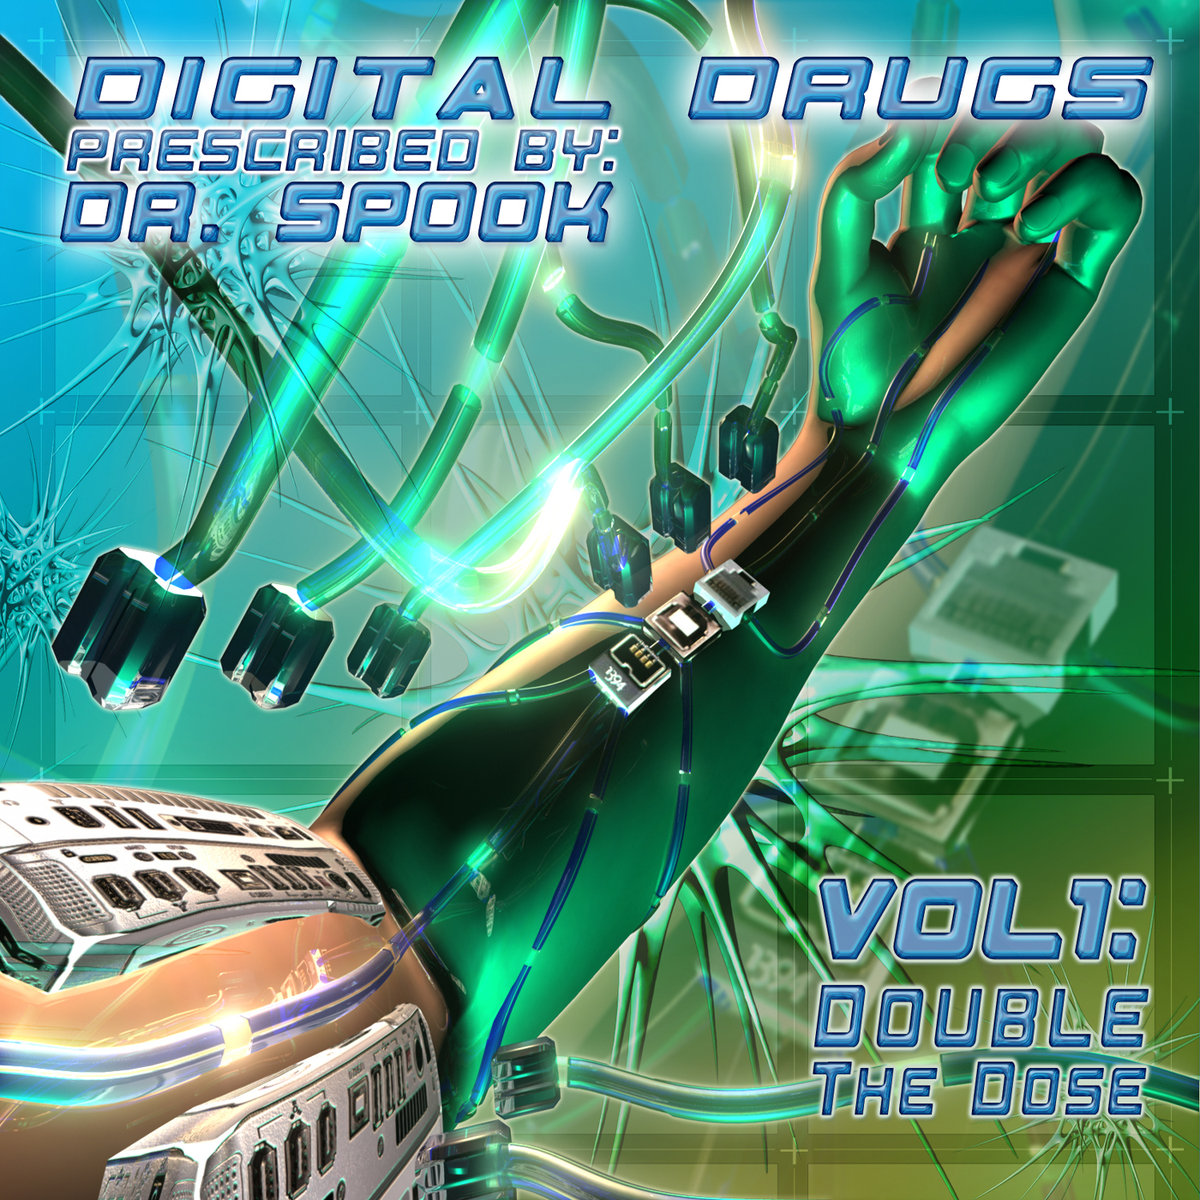 Various Artists - Digital Drugs Vol.1: Double the Dose (Prescribed by Dr. Spook)